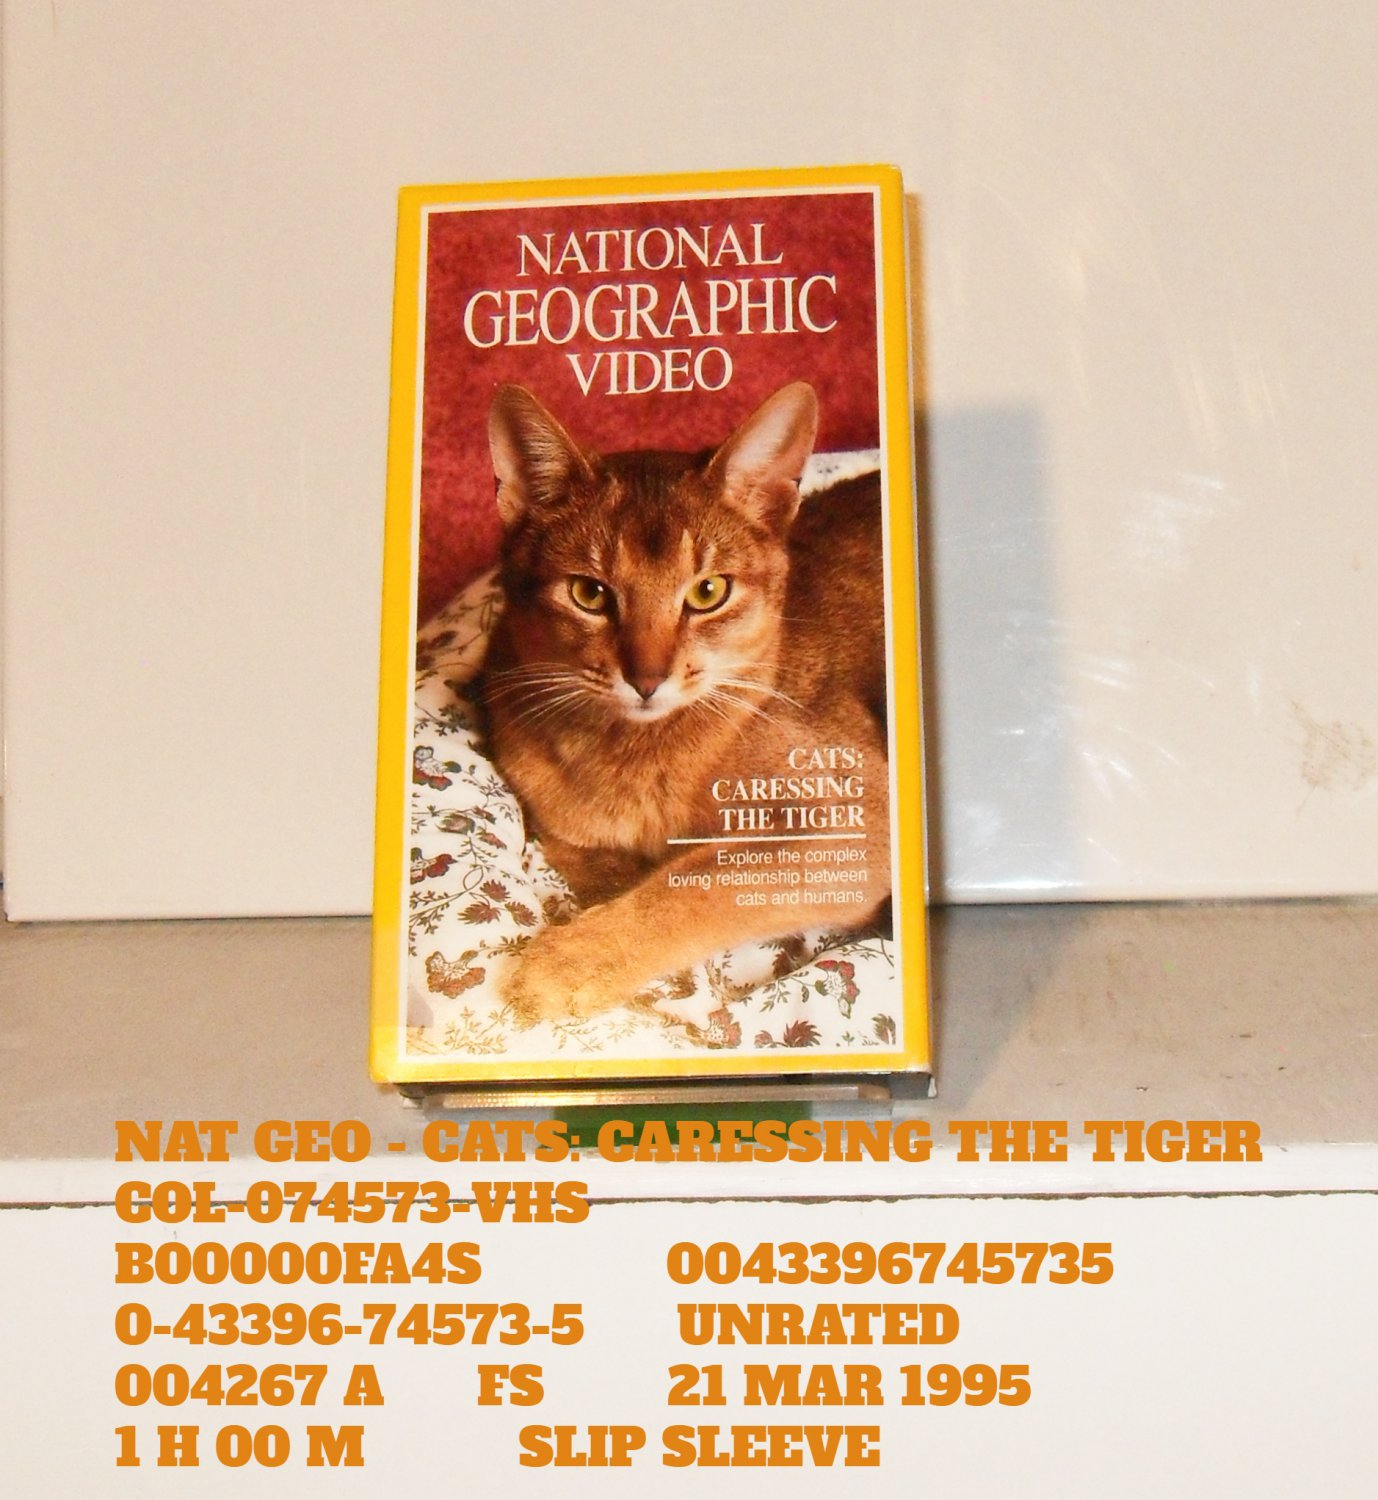 VHS - NAT GEO - CATS: CARESSING THE TIGER